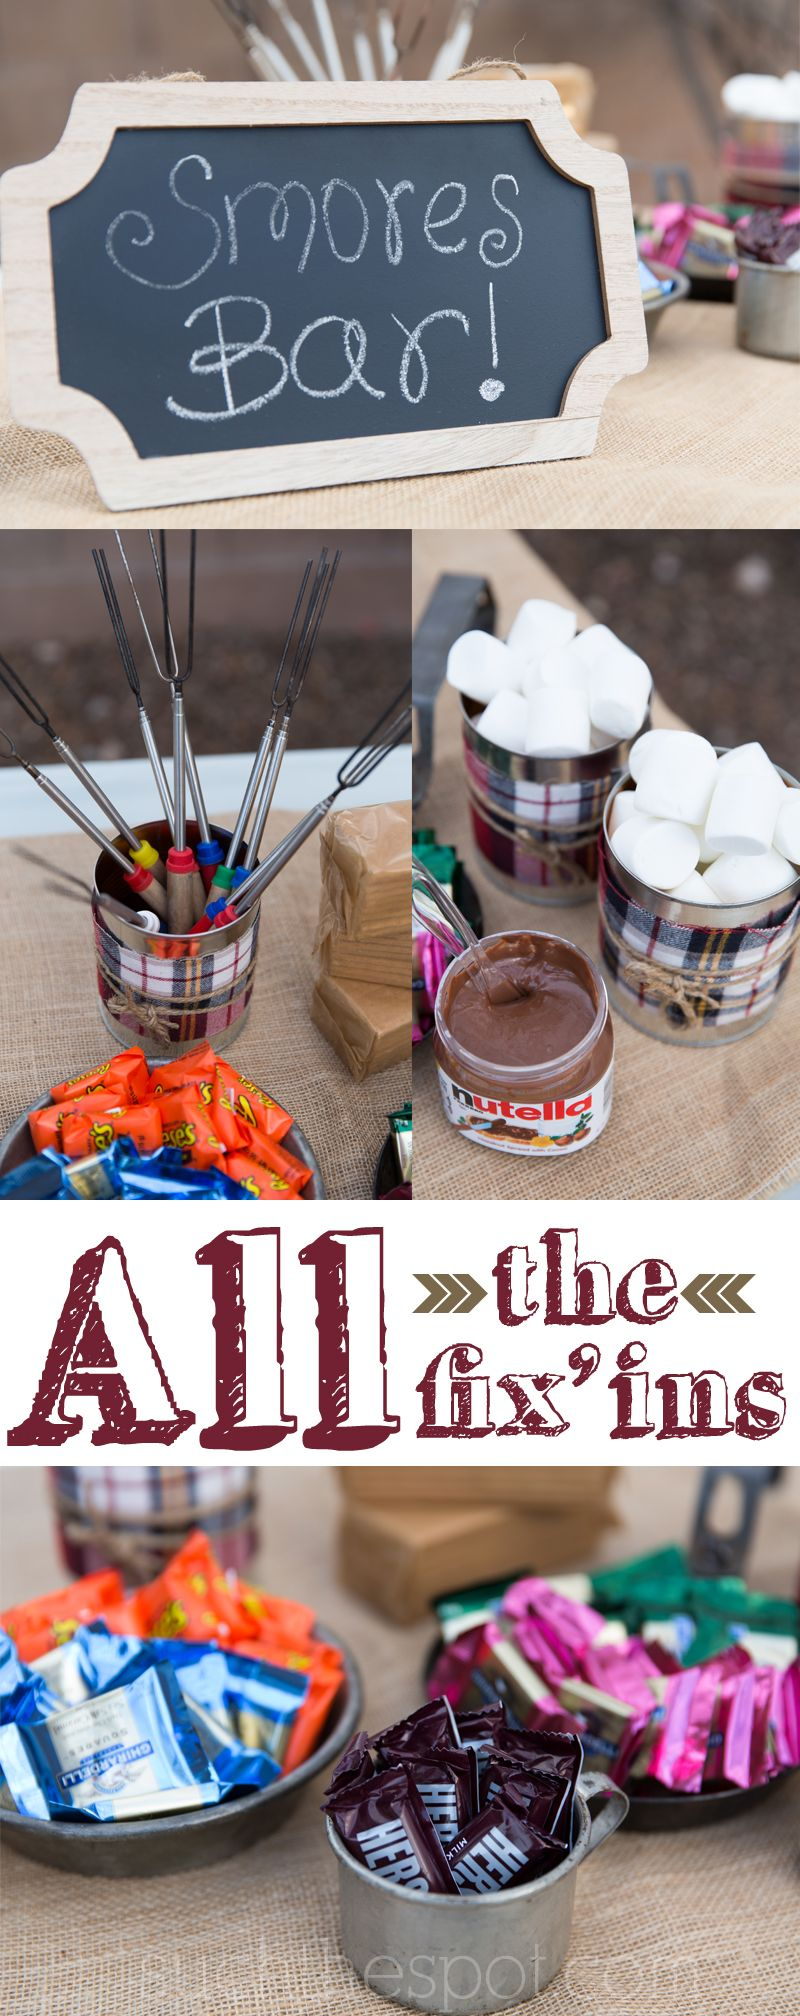 Bonfire Birthday Party Ideas for Food, Decorations and Fun